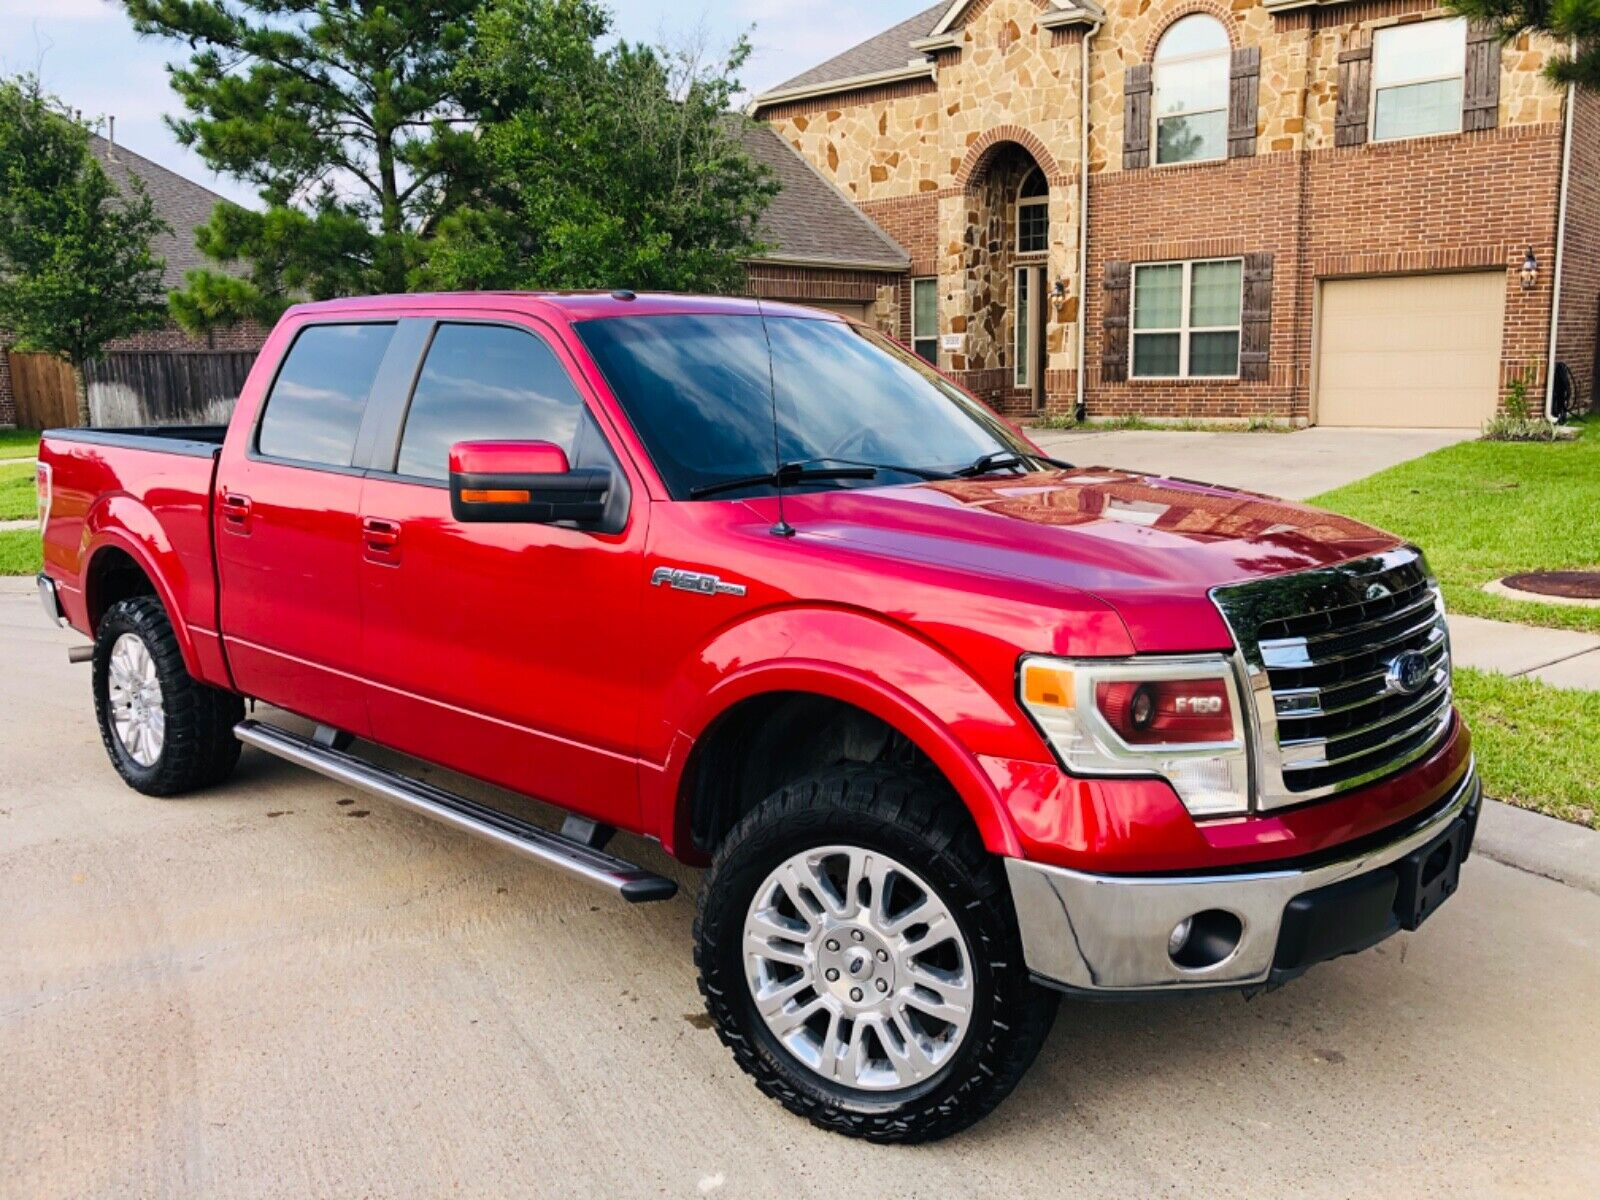 FORD F150 LARIAT 146k Miles RED 4 DOOR CAB STYLE SUPER CREW V8 NEW CHROME WHEELS